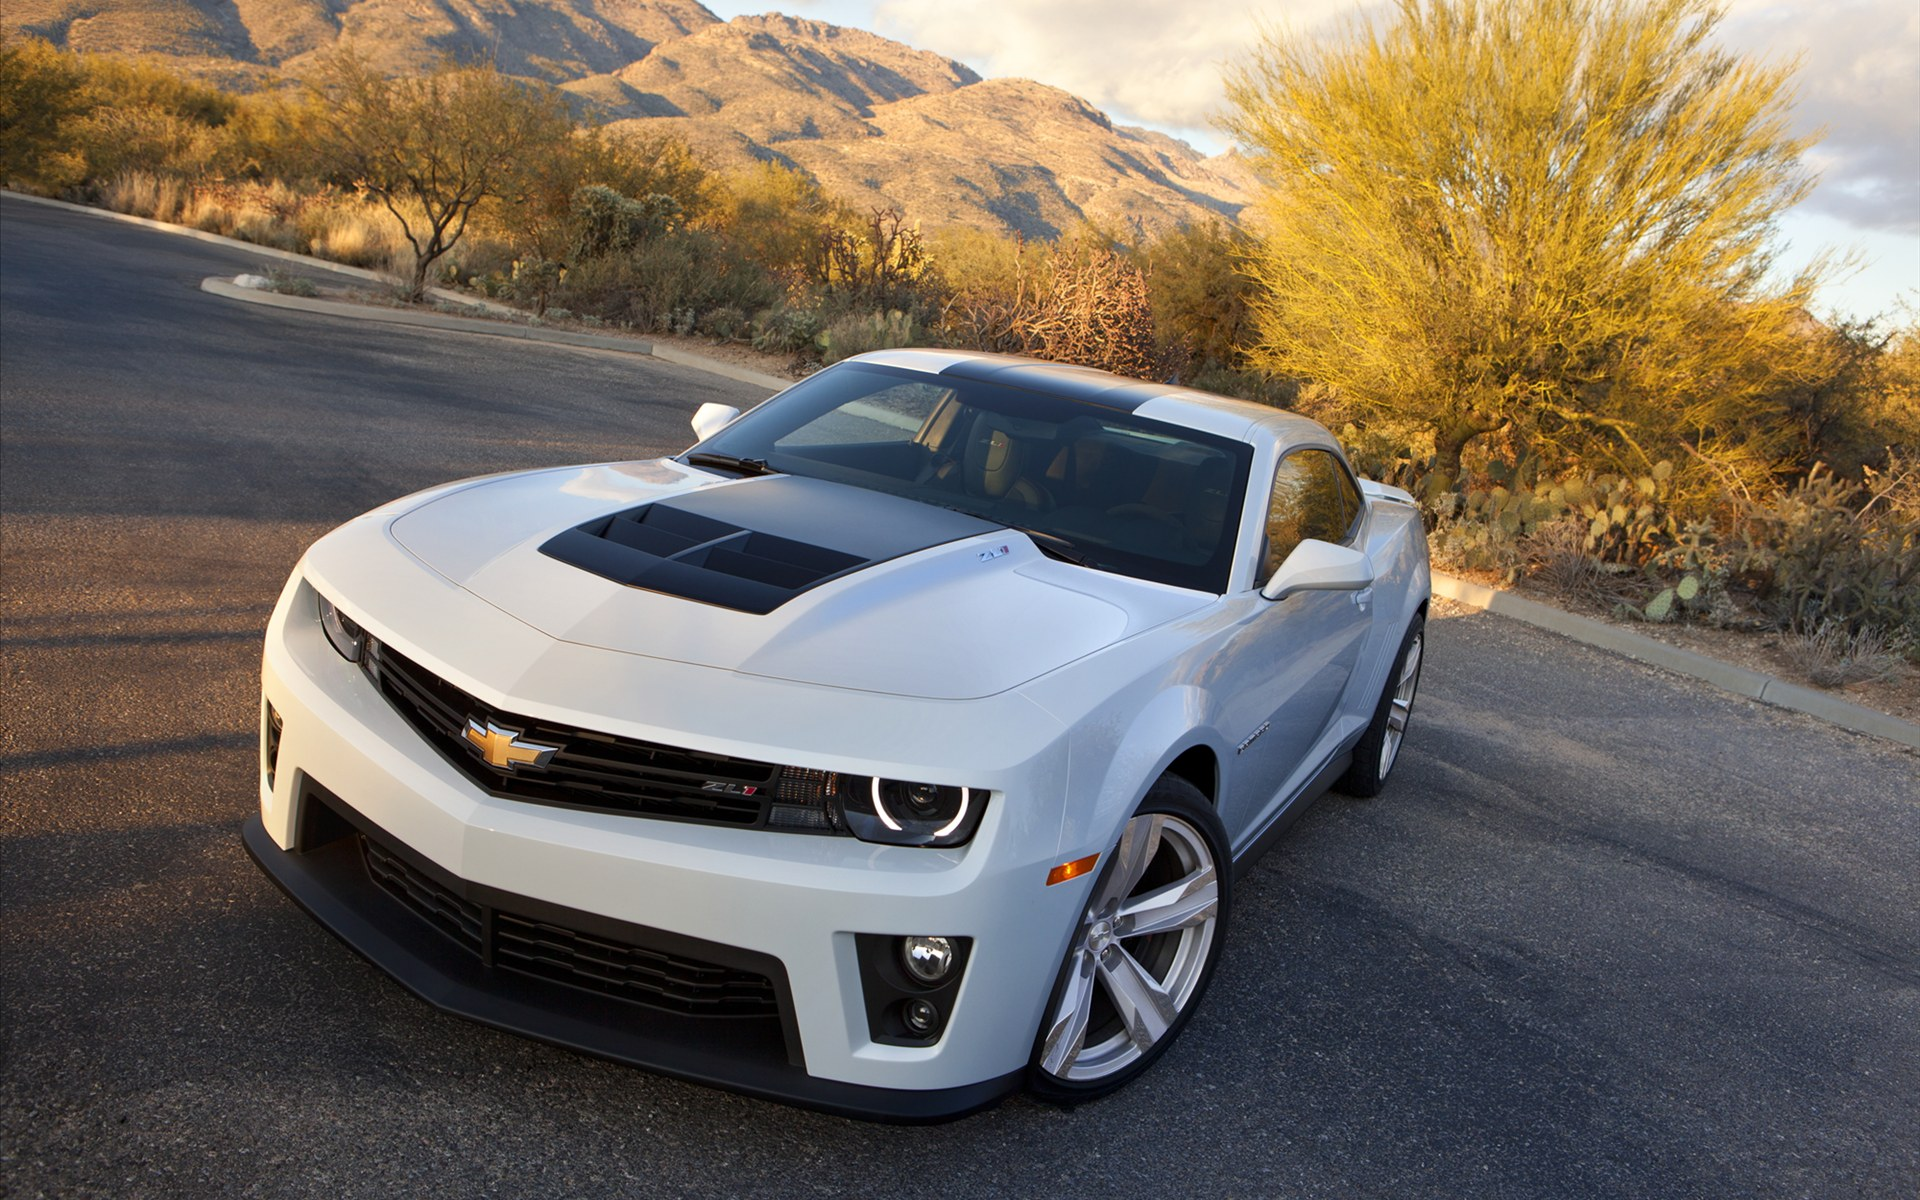 Chevrolet Camaro ZL1 2012 3 Wallpaper HD Car Wallpapers 1920x1200